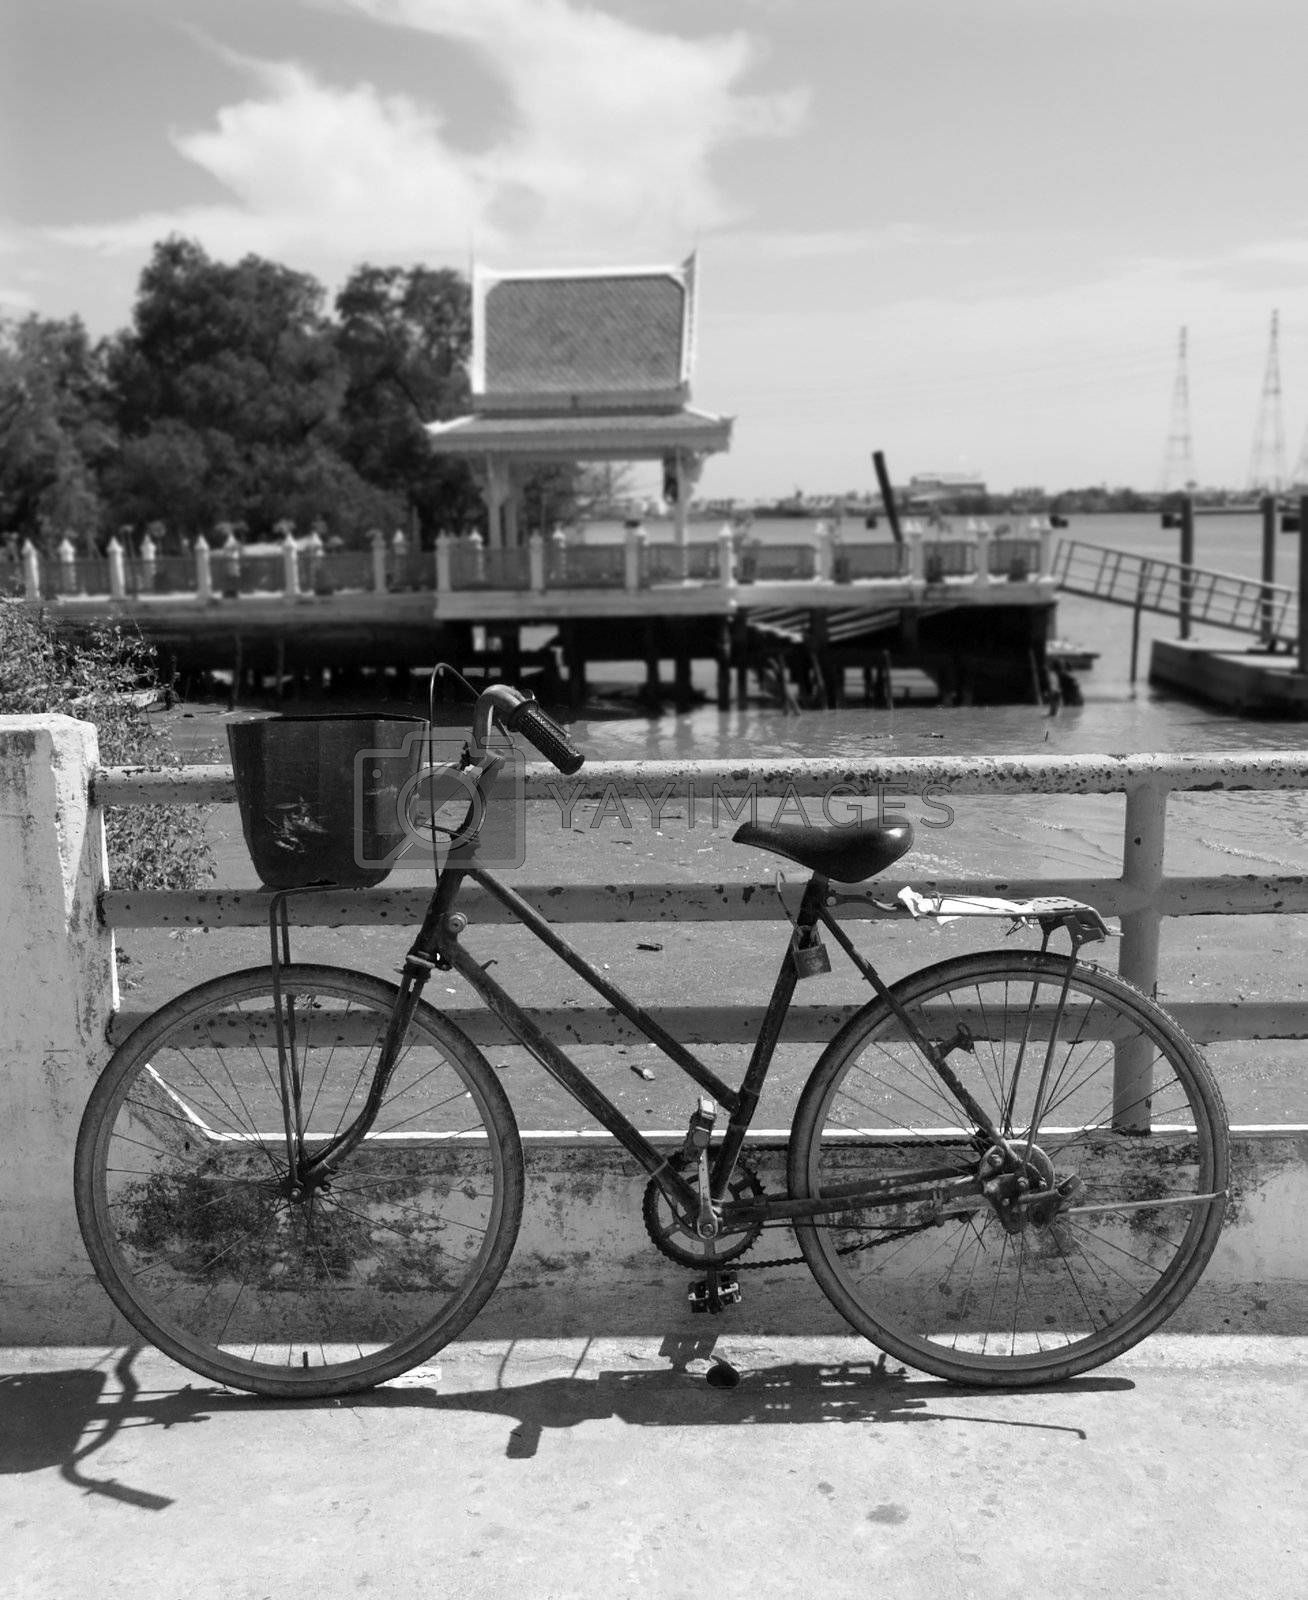 Bicycle by the water by epixx